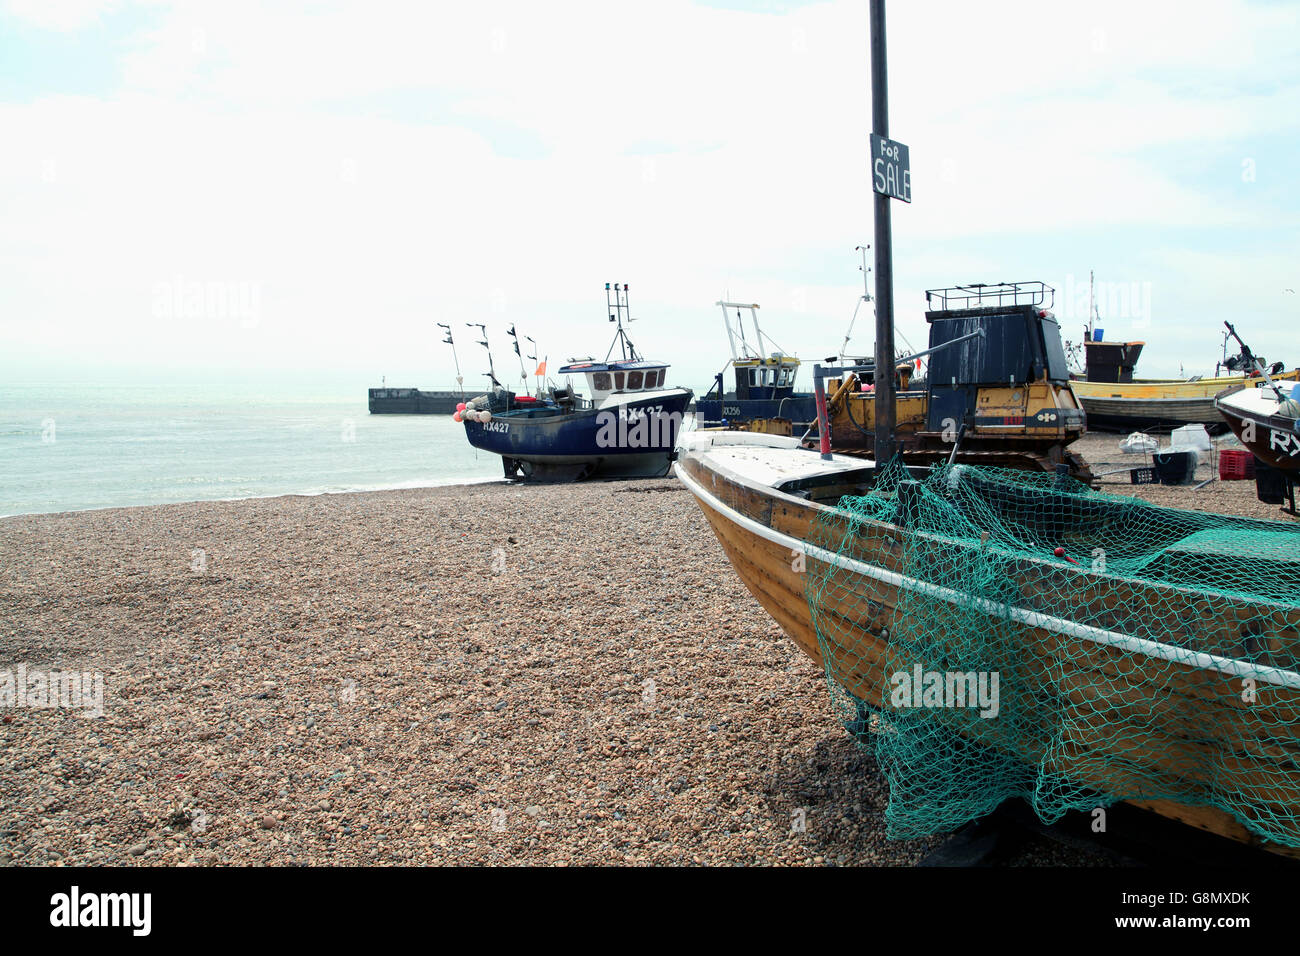 fishing boats pulled up on the beach - Stock Image